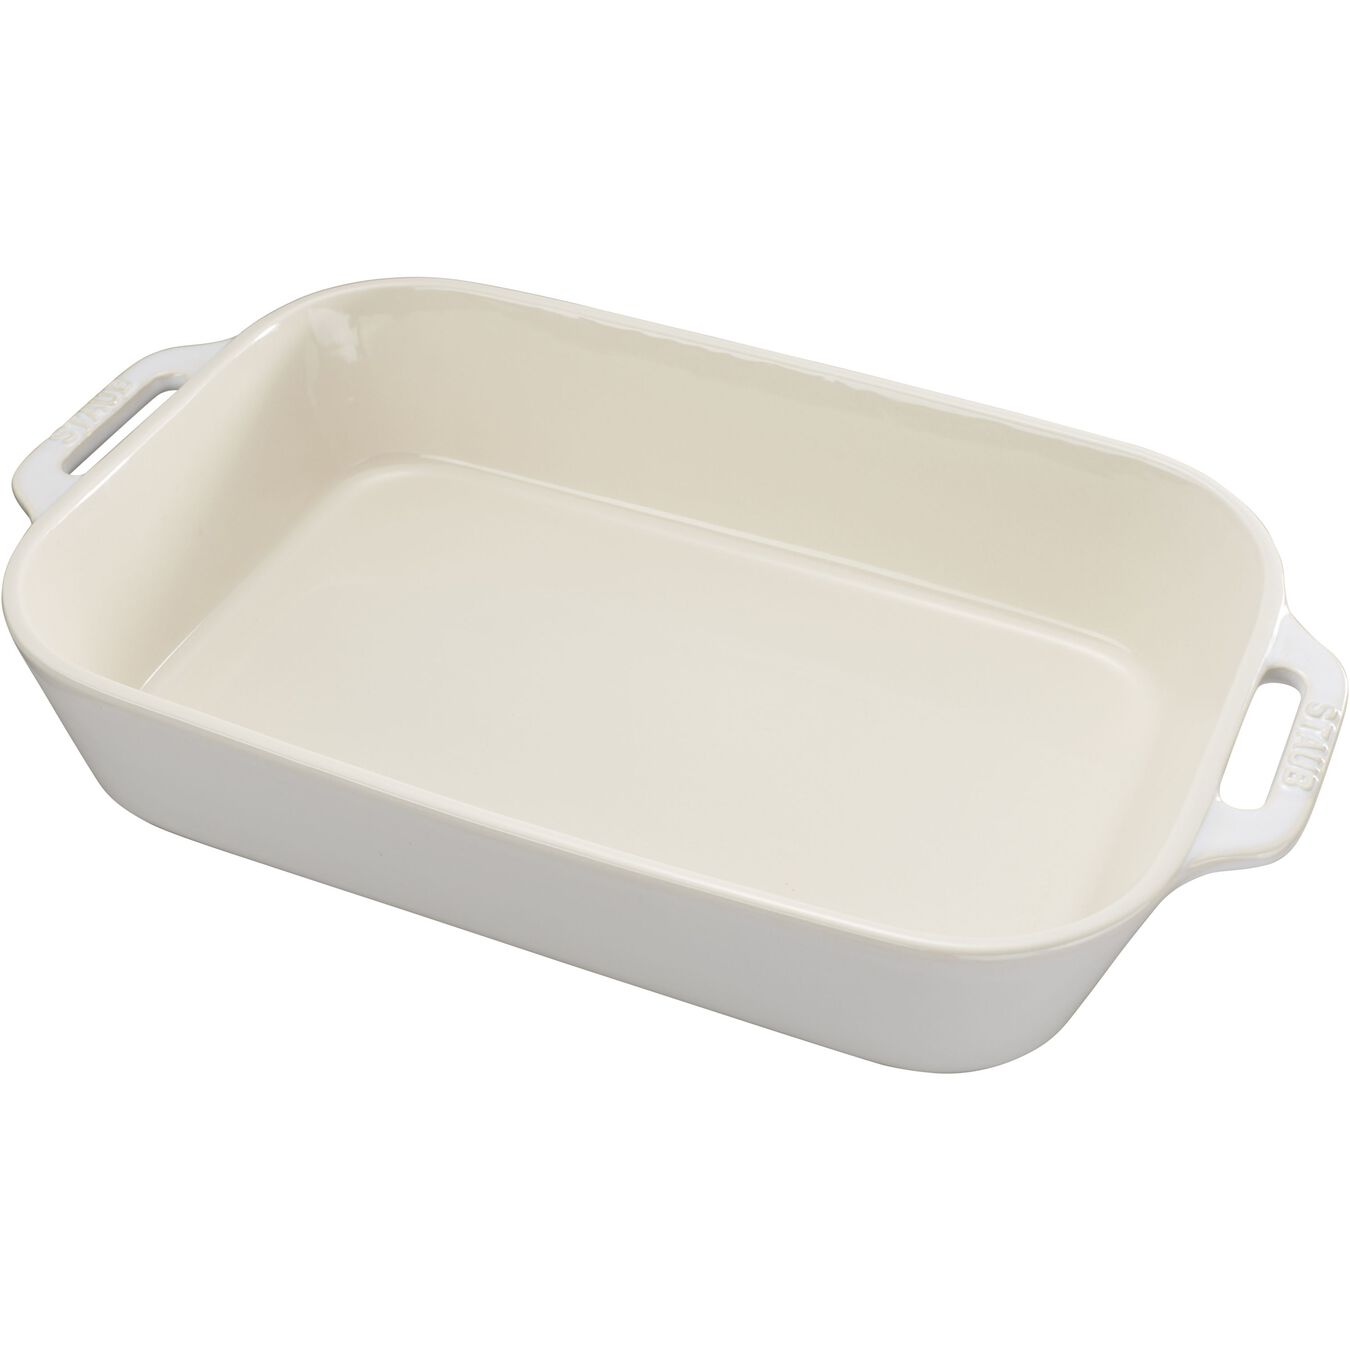 13-inch x 9-inch Rectangular Baking Dish - Rustic Ivory,,large 1